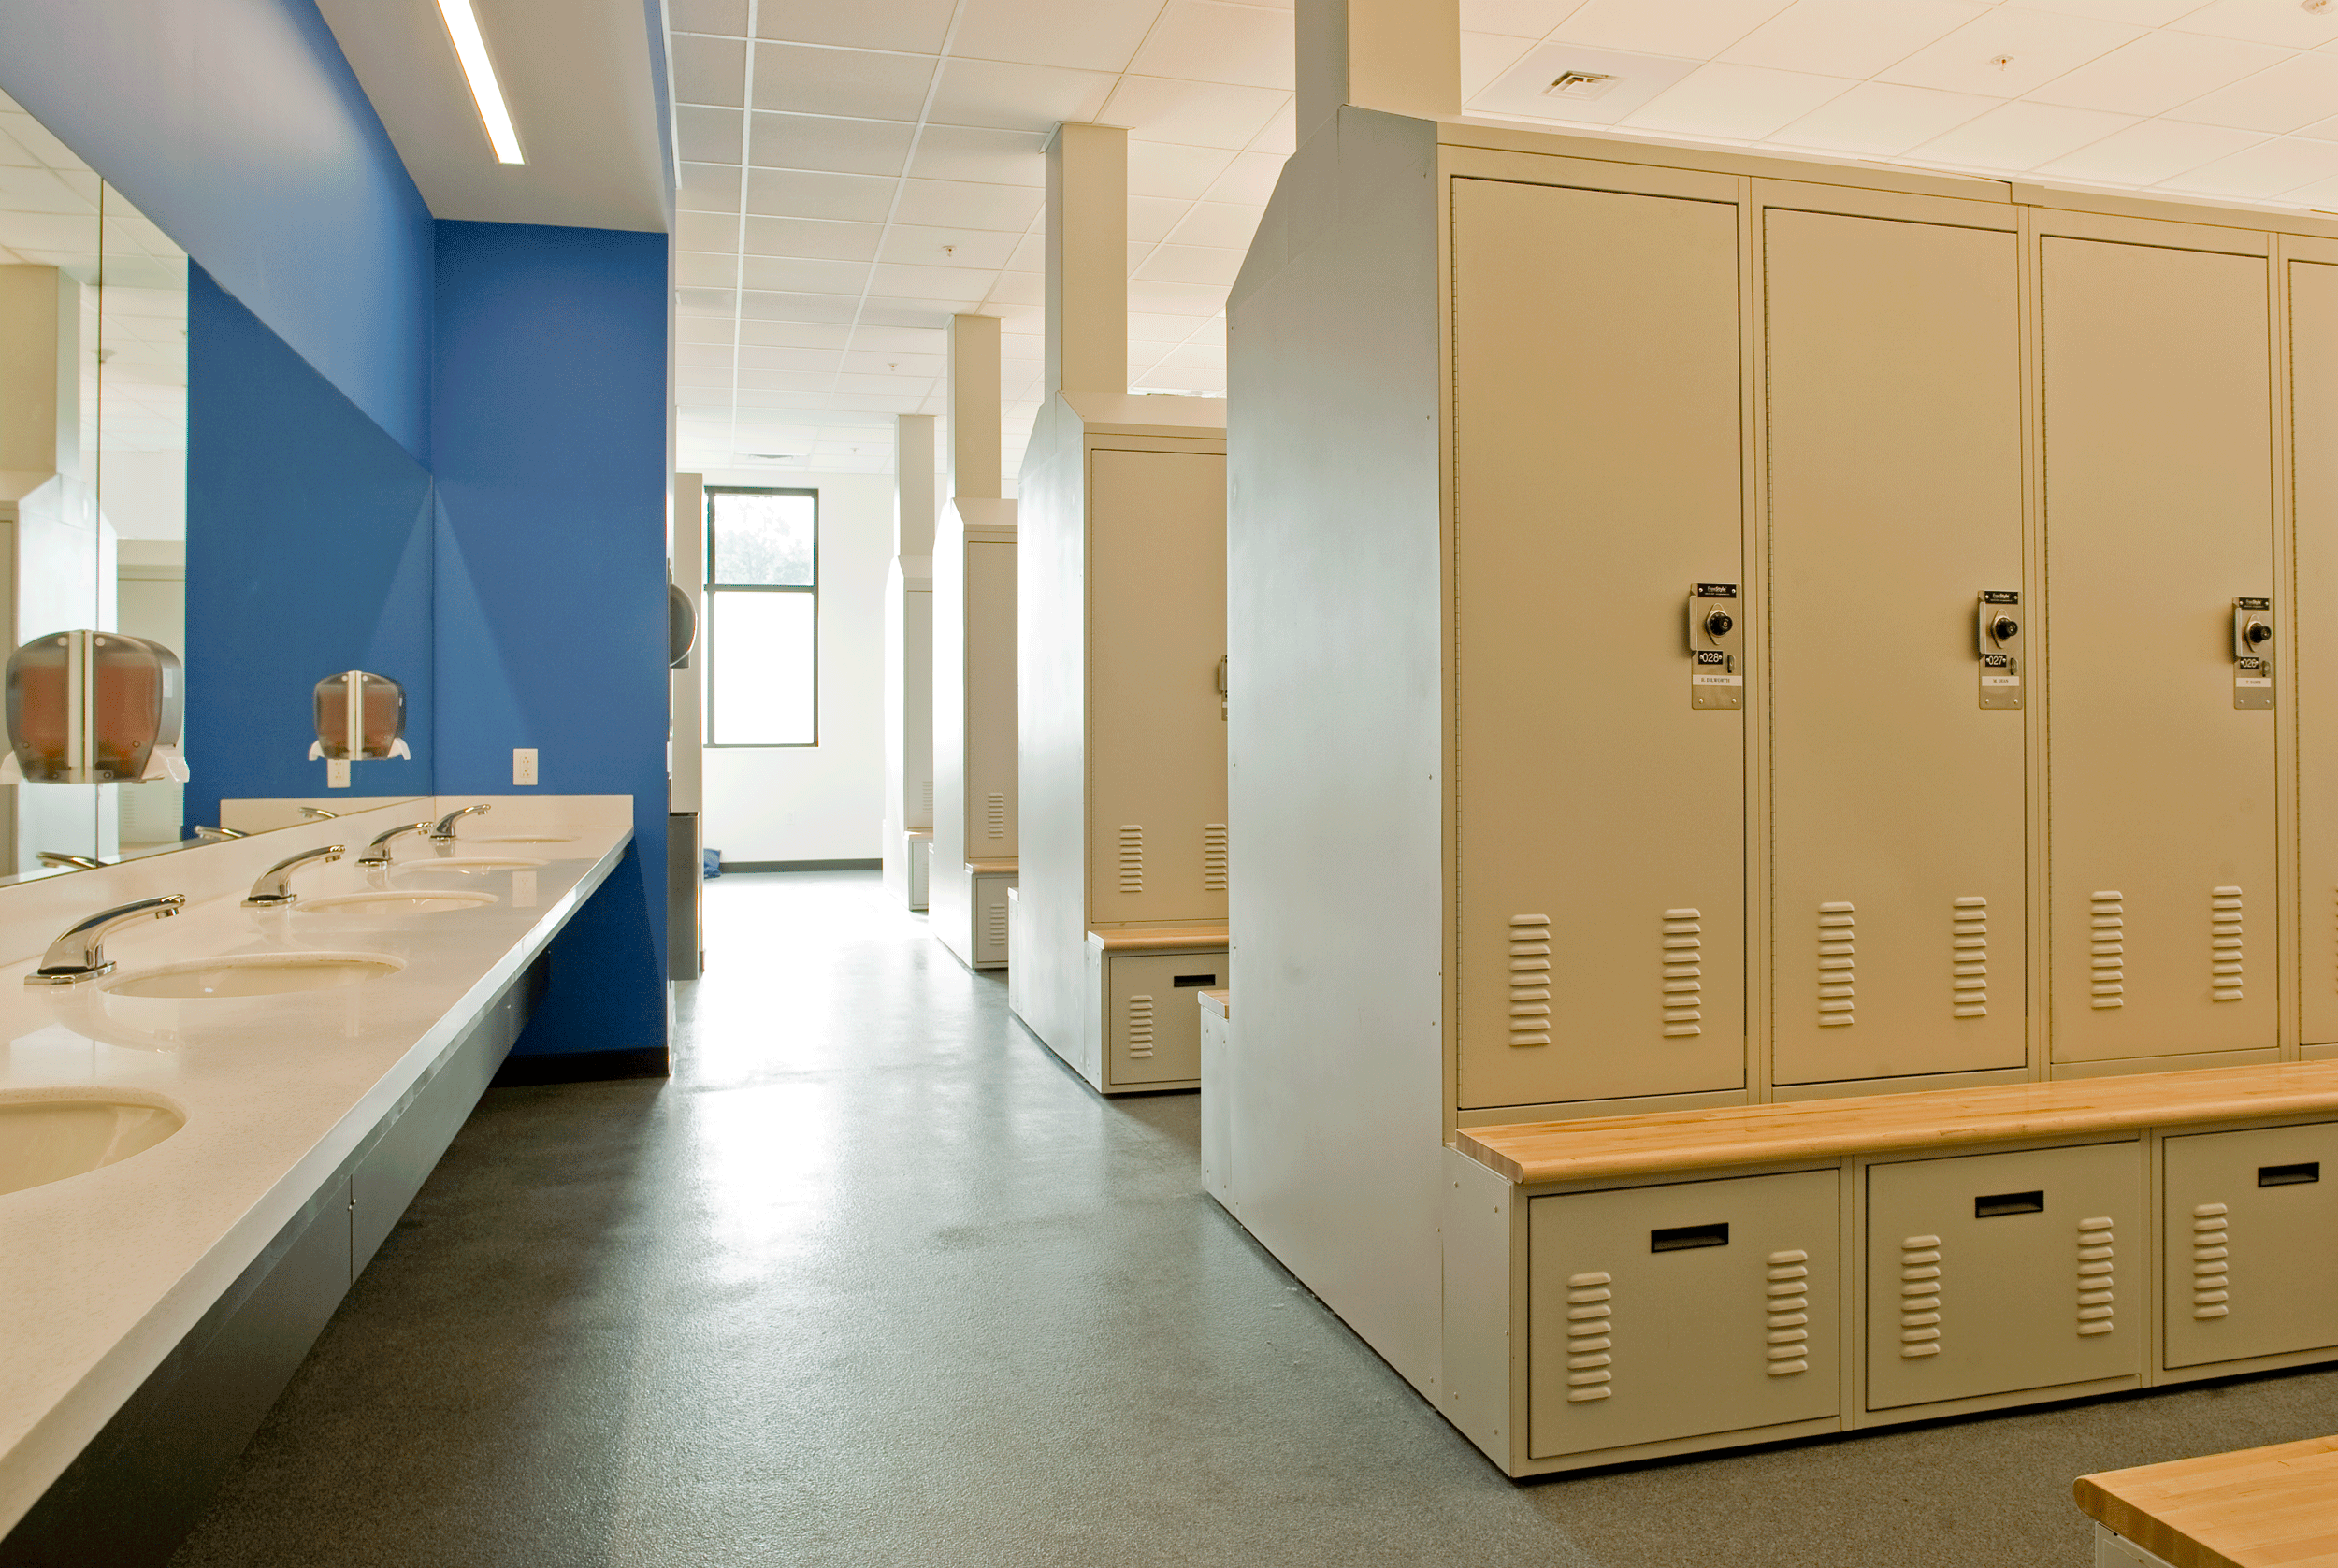 restrooms with lockers